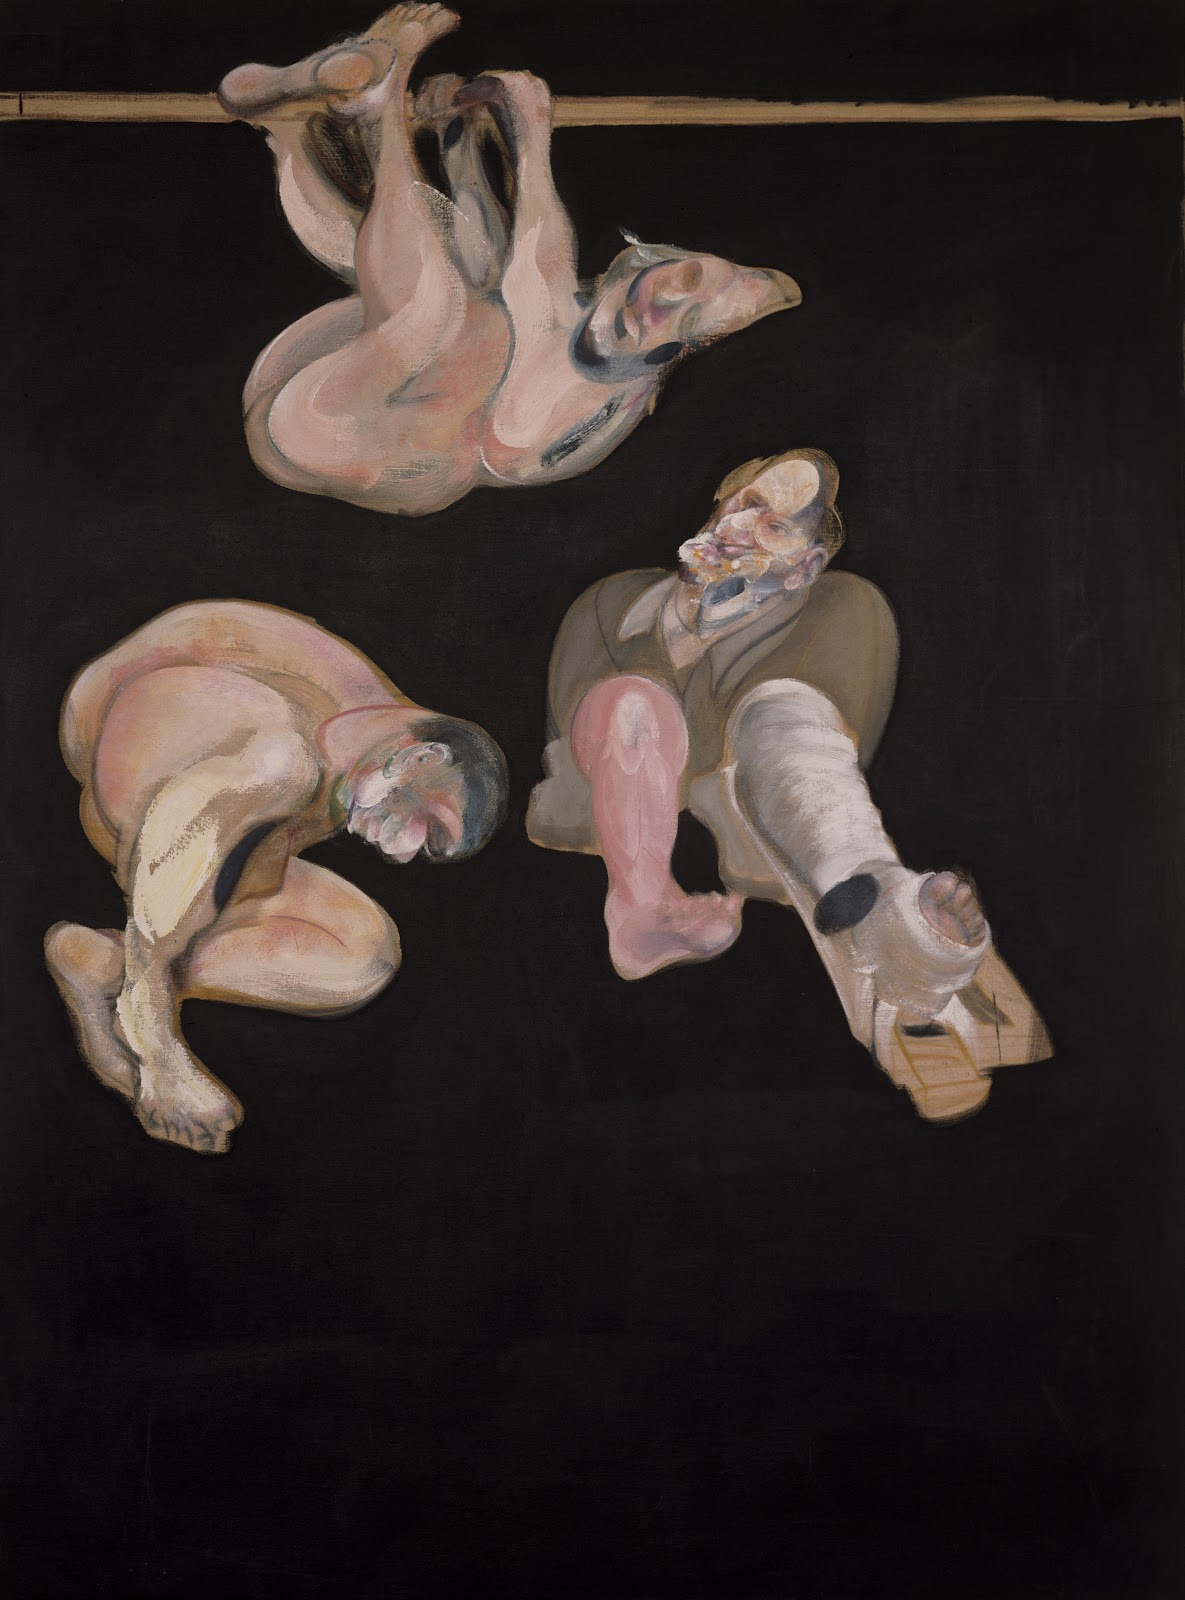 Francis Bacon, Three Studies from the human Body, 1967